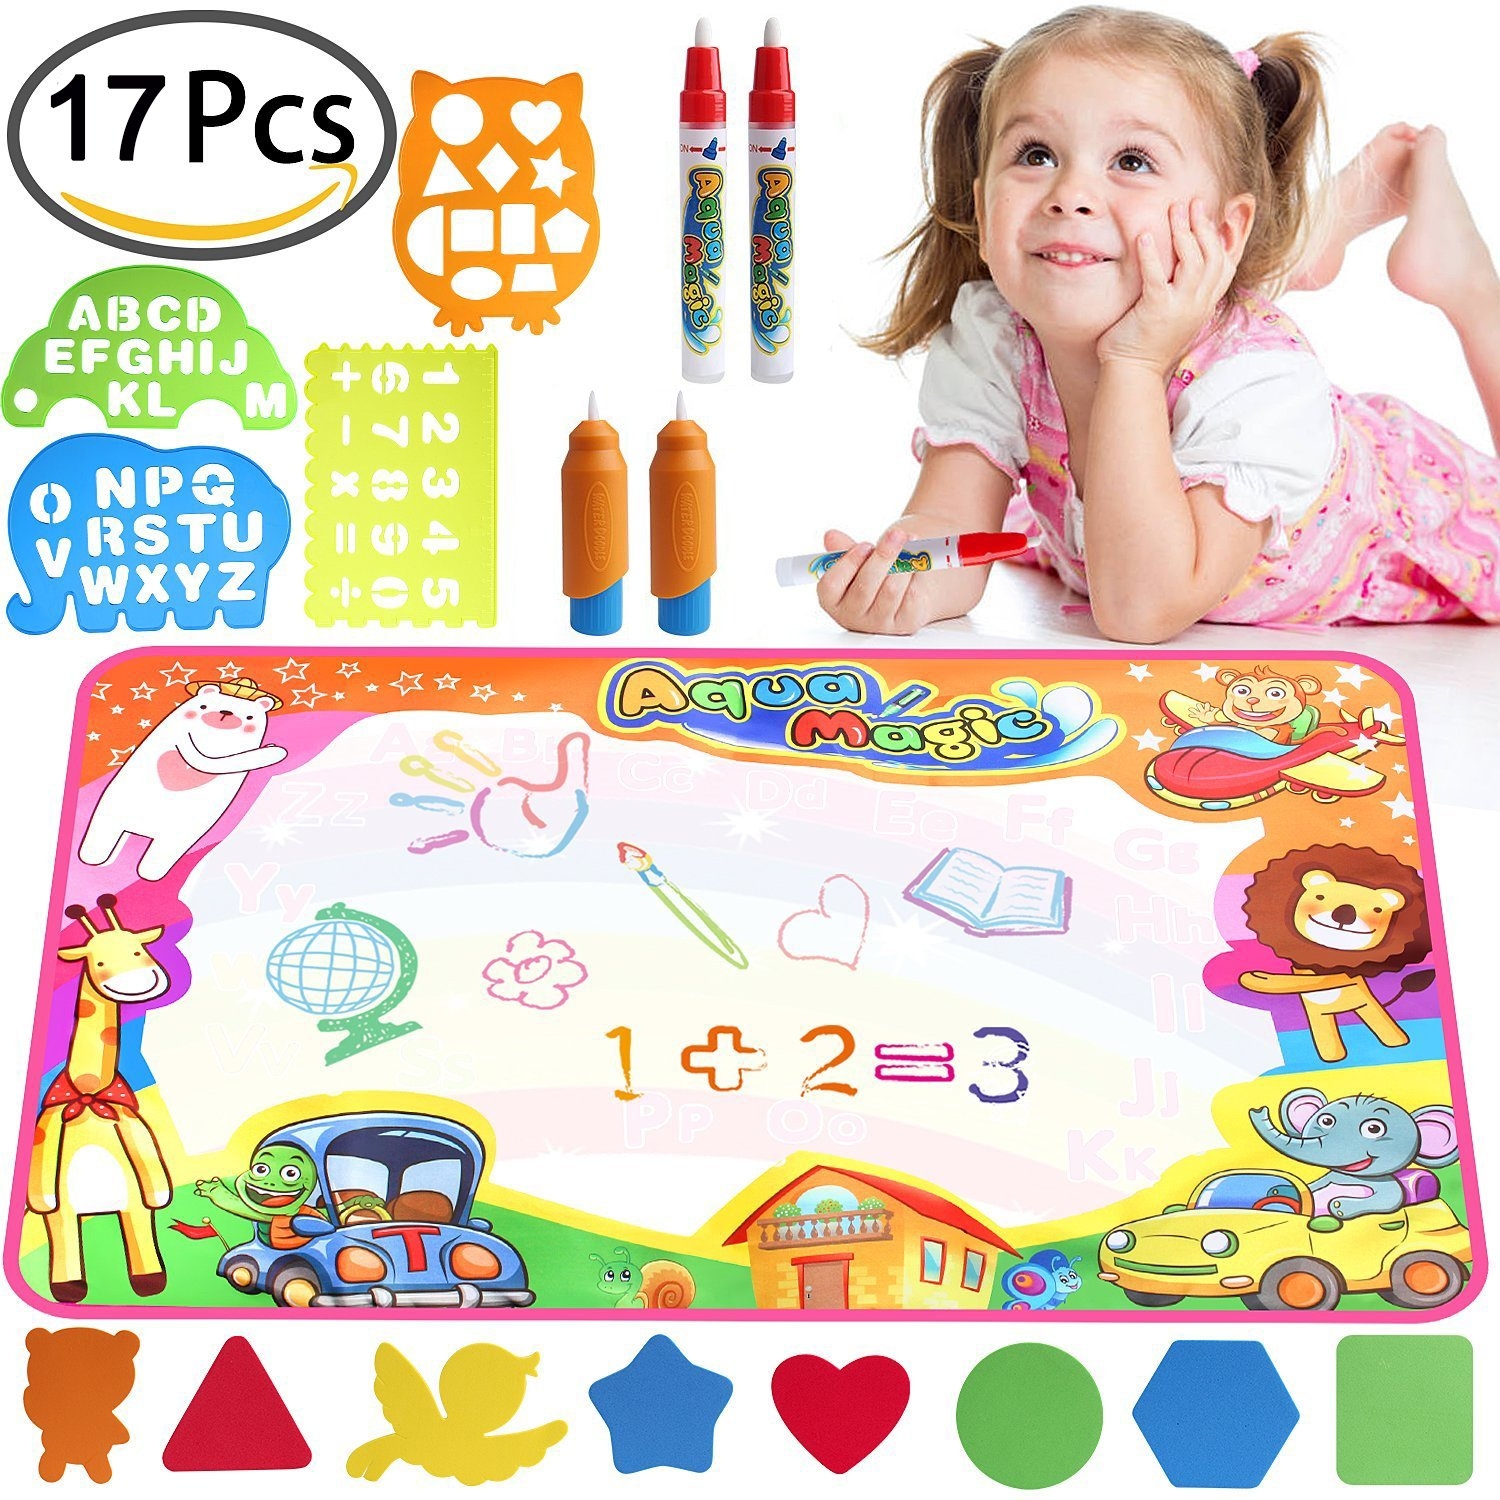 Toddlers Painting Board Aqua Writing Mats with Pens and Model,Kids Educational Travel Toy Gift for Boys Girls Toddlers AIMEDYOU Water Drawing Mat,Water Doodle Mat for Kids Toys